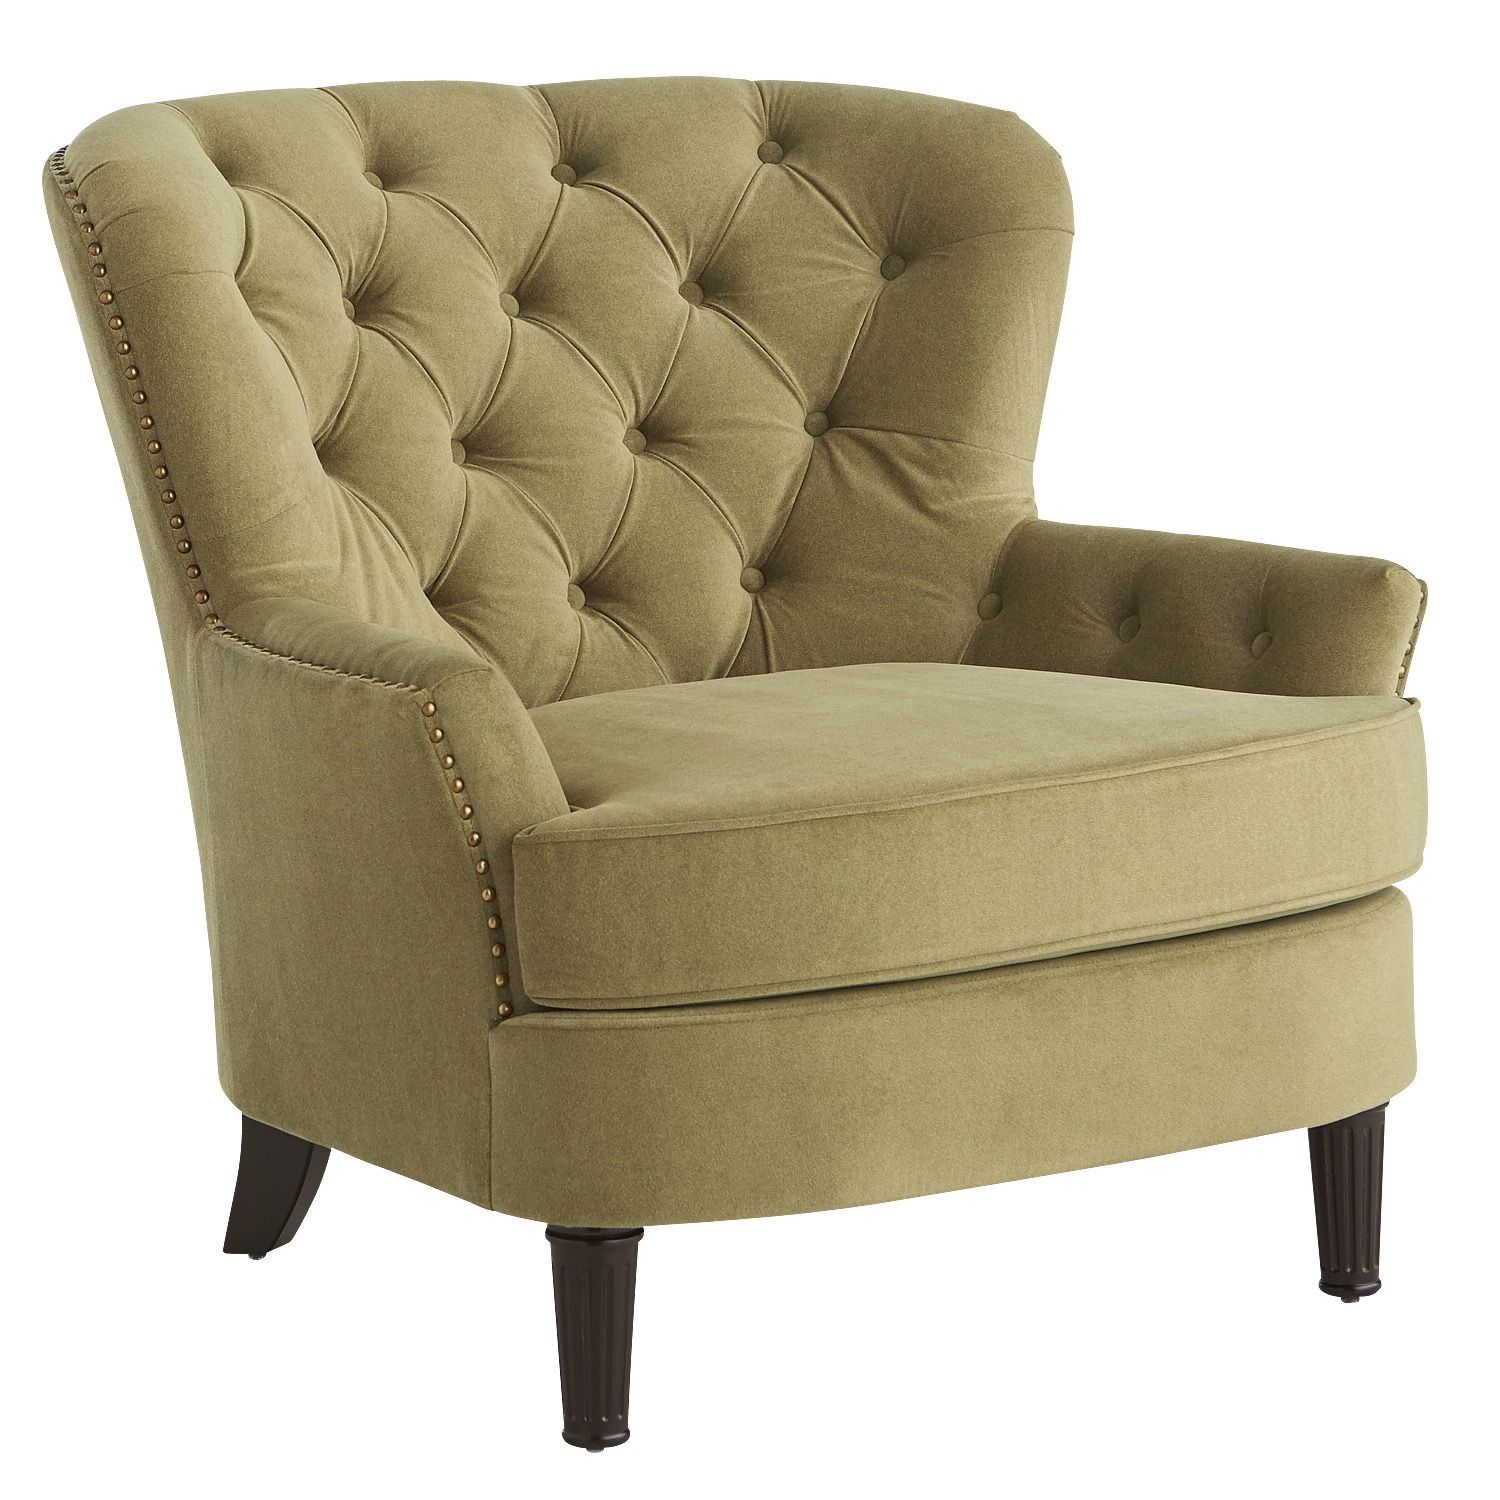 Green Upholstered Chair Eliza Olive Green Upholstered Armchair Products Upholstered